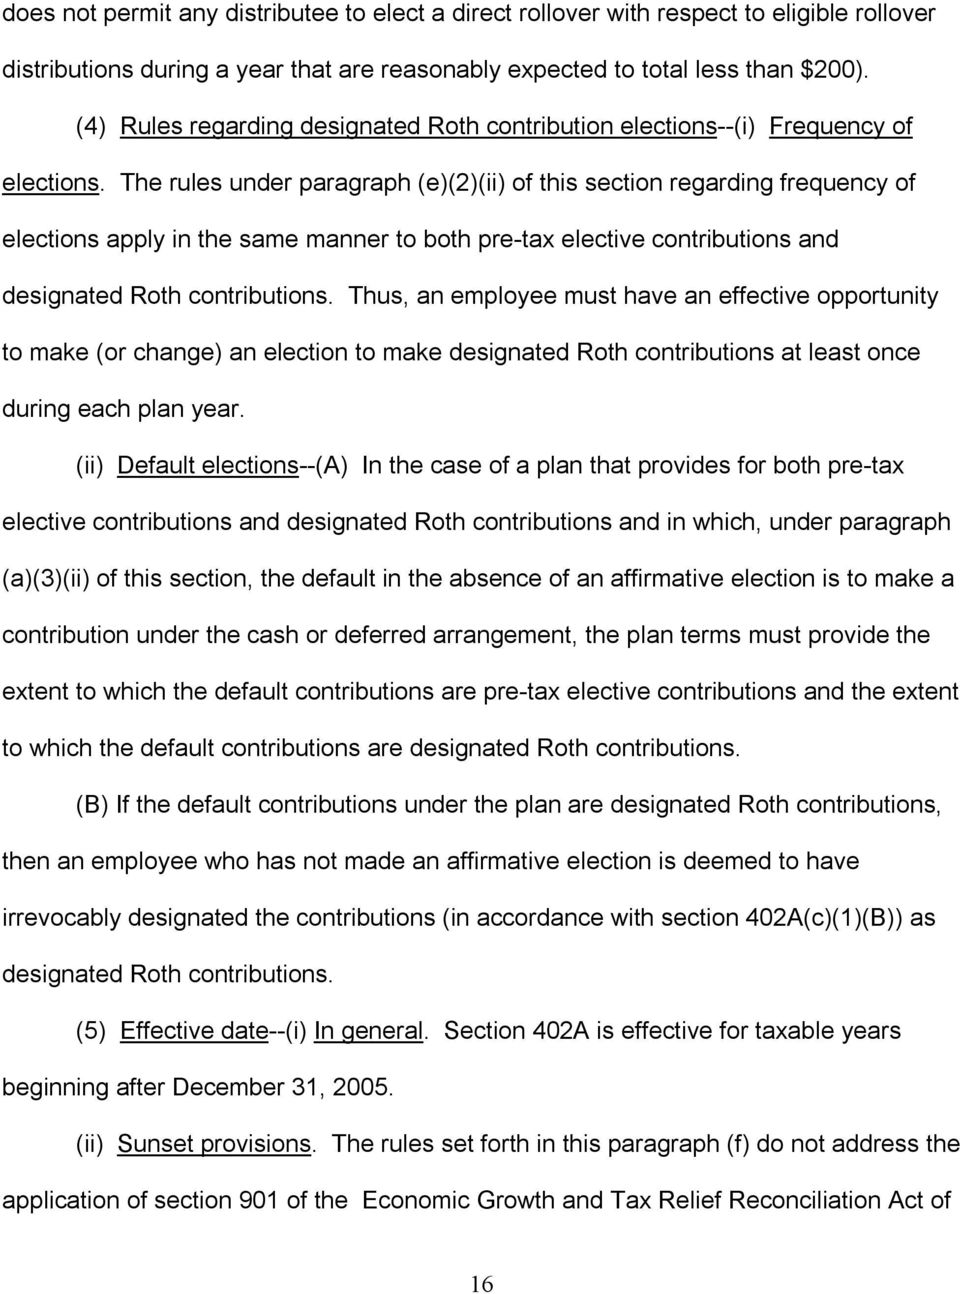 The rules under paragraph (e)(2)(ii) of this section regarding frequency of elections apply in the same manner to both pre-tax elective contributions and designated Roth contributions.